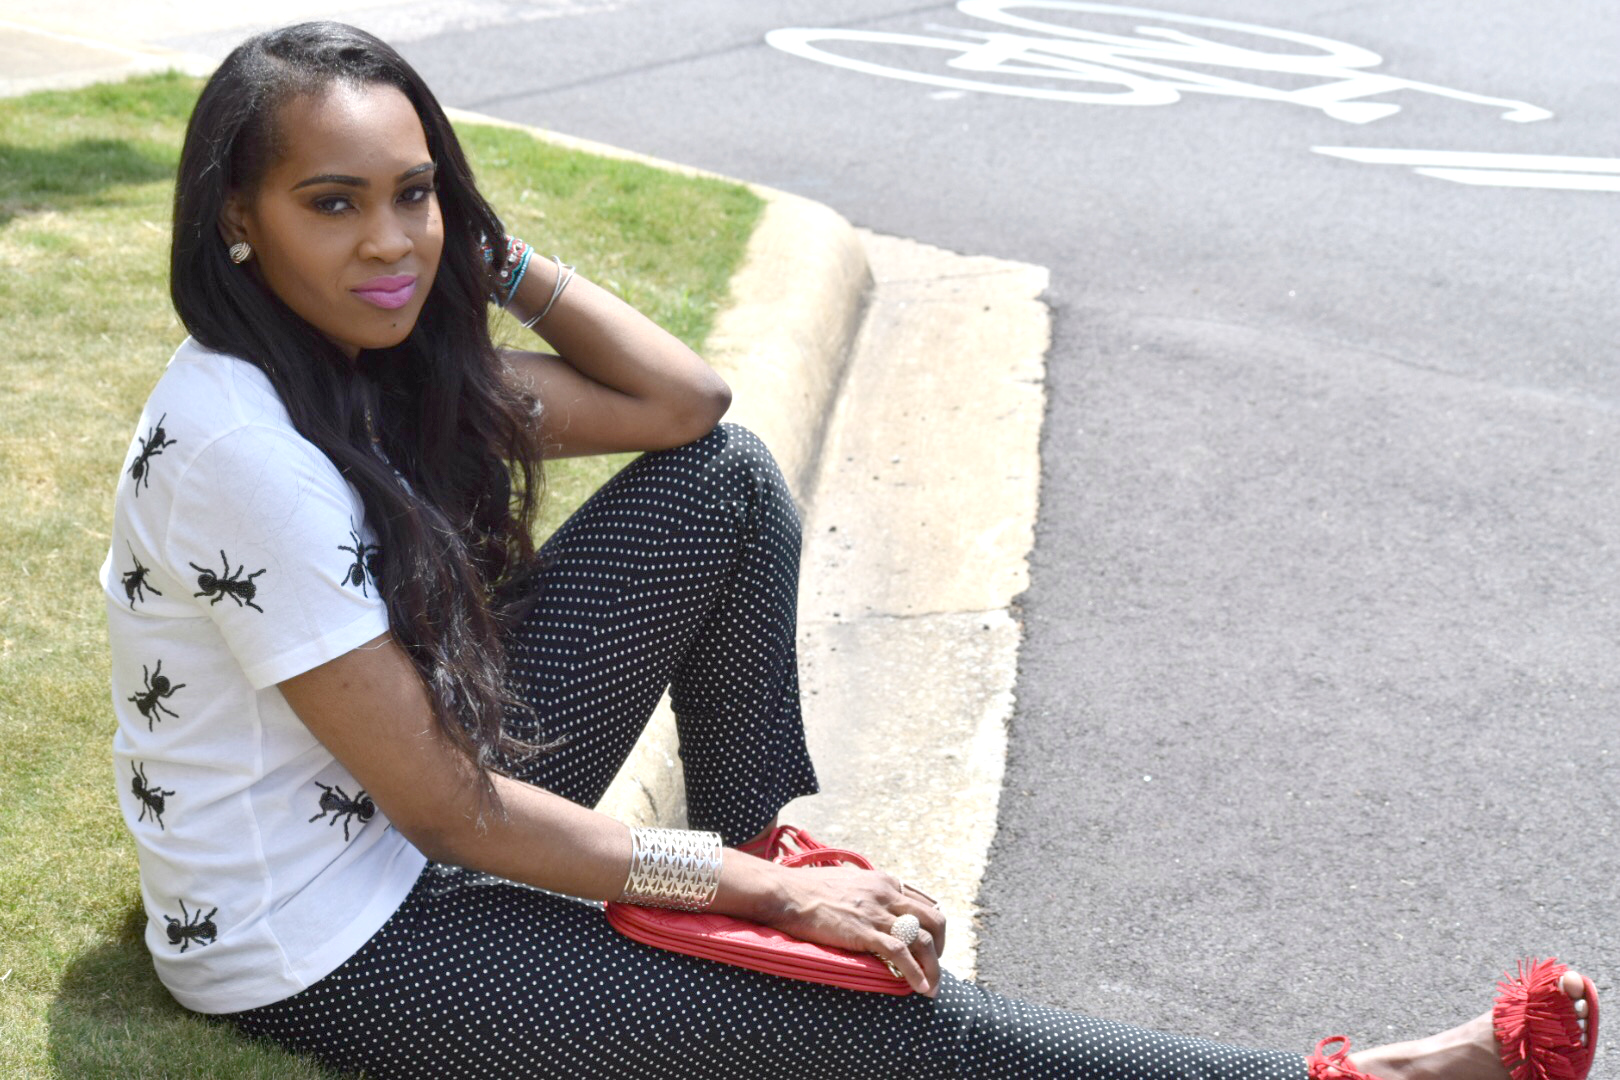 Style-files-Forever 21 White -Sequined-Ant- Applique-Tee-black-white-polka dot-pants-justfab-red-fringe-sandals-oohlalablog-9